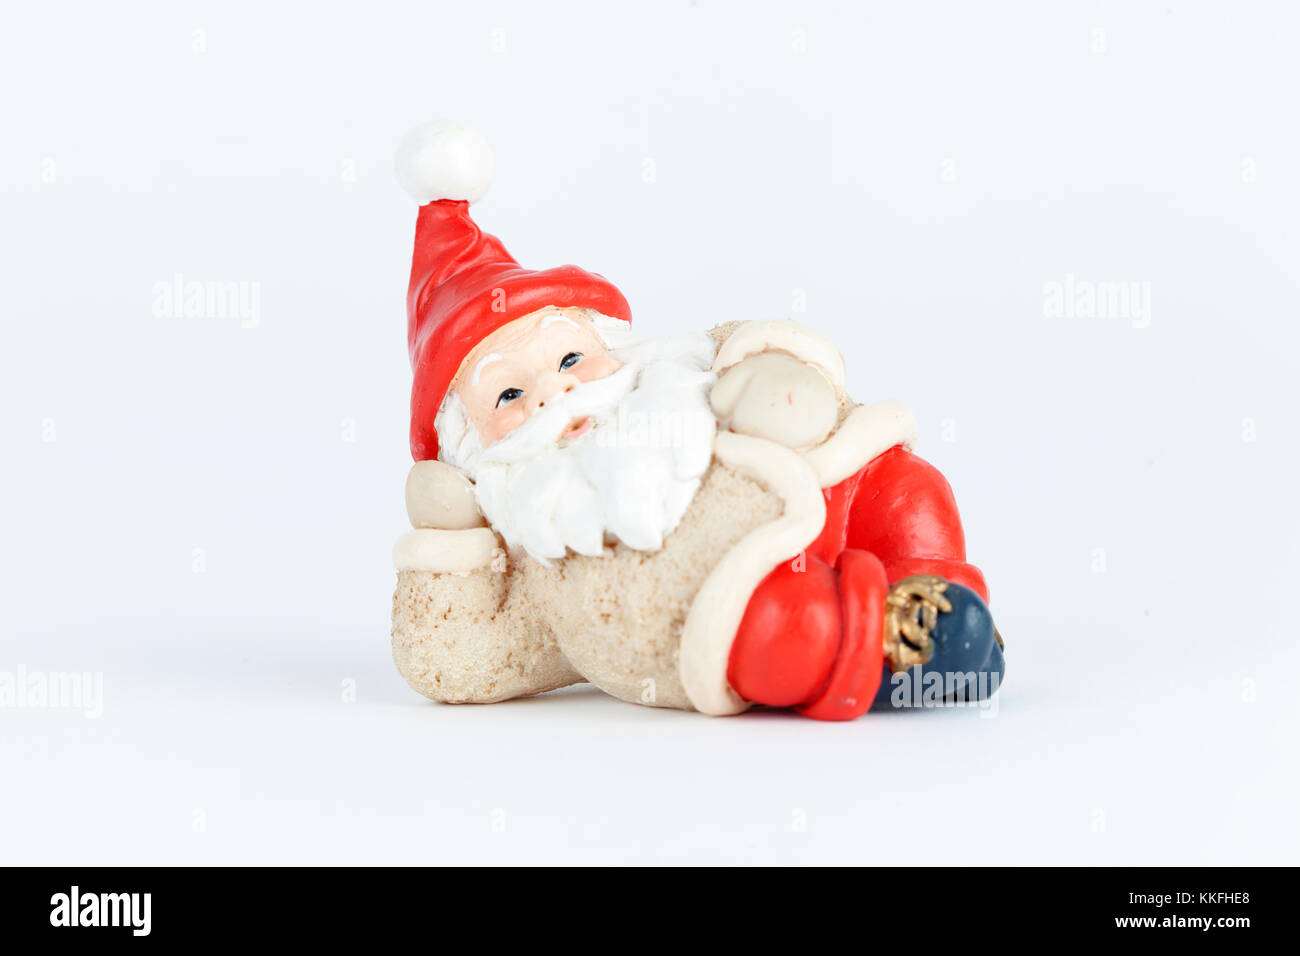 Red and white mini figure riding in white snow. Christmas decoration isolated on white background. Closeup. - Stock Image